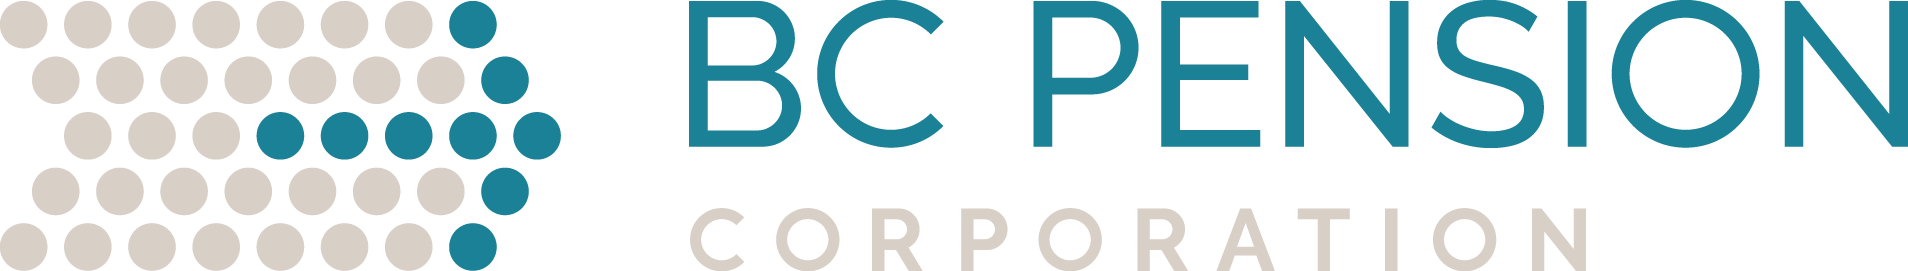 British Columbia Pension Corporation logo